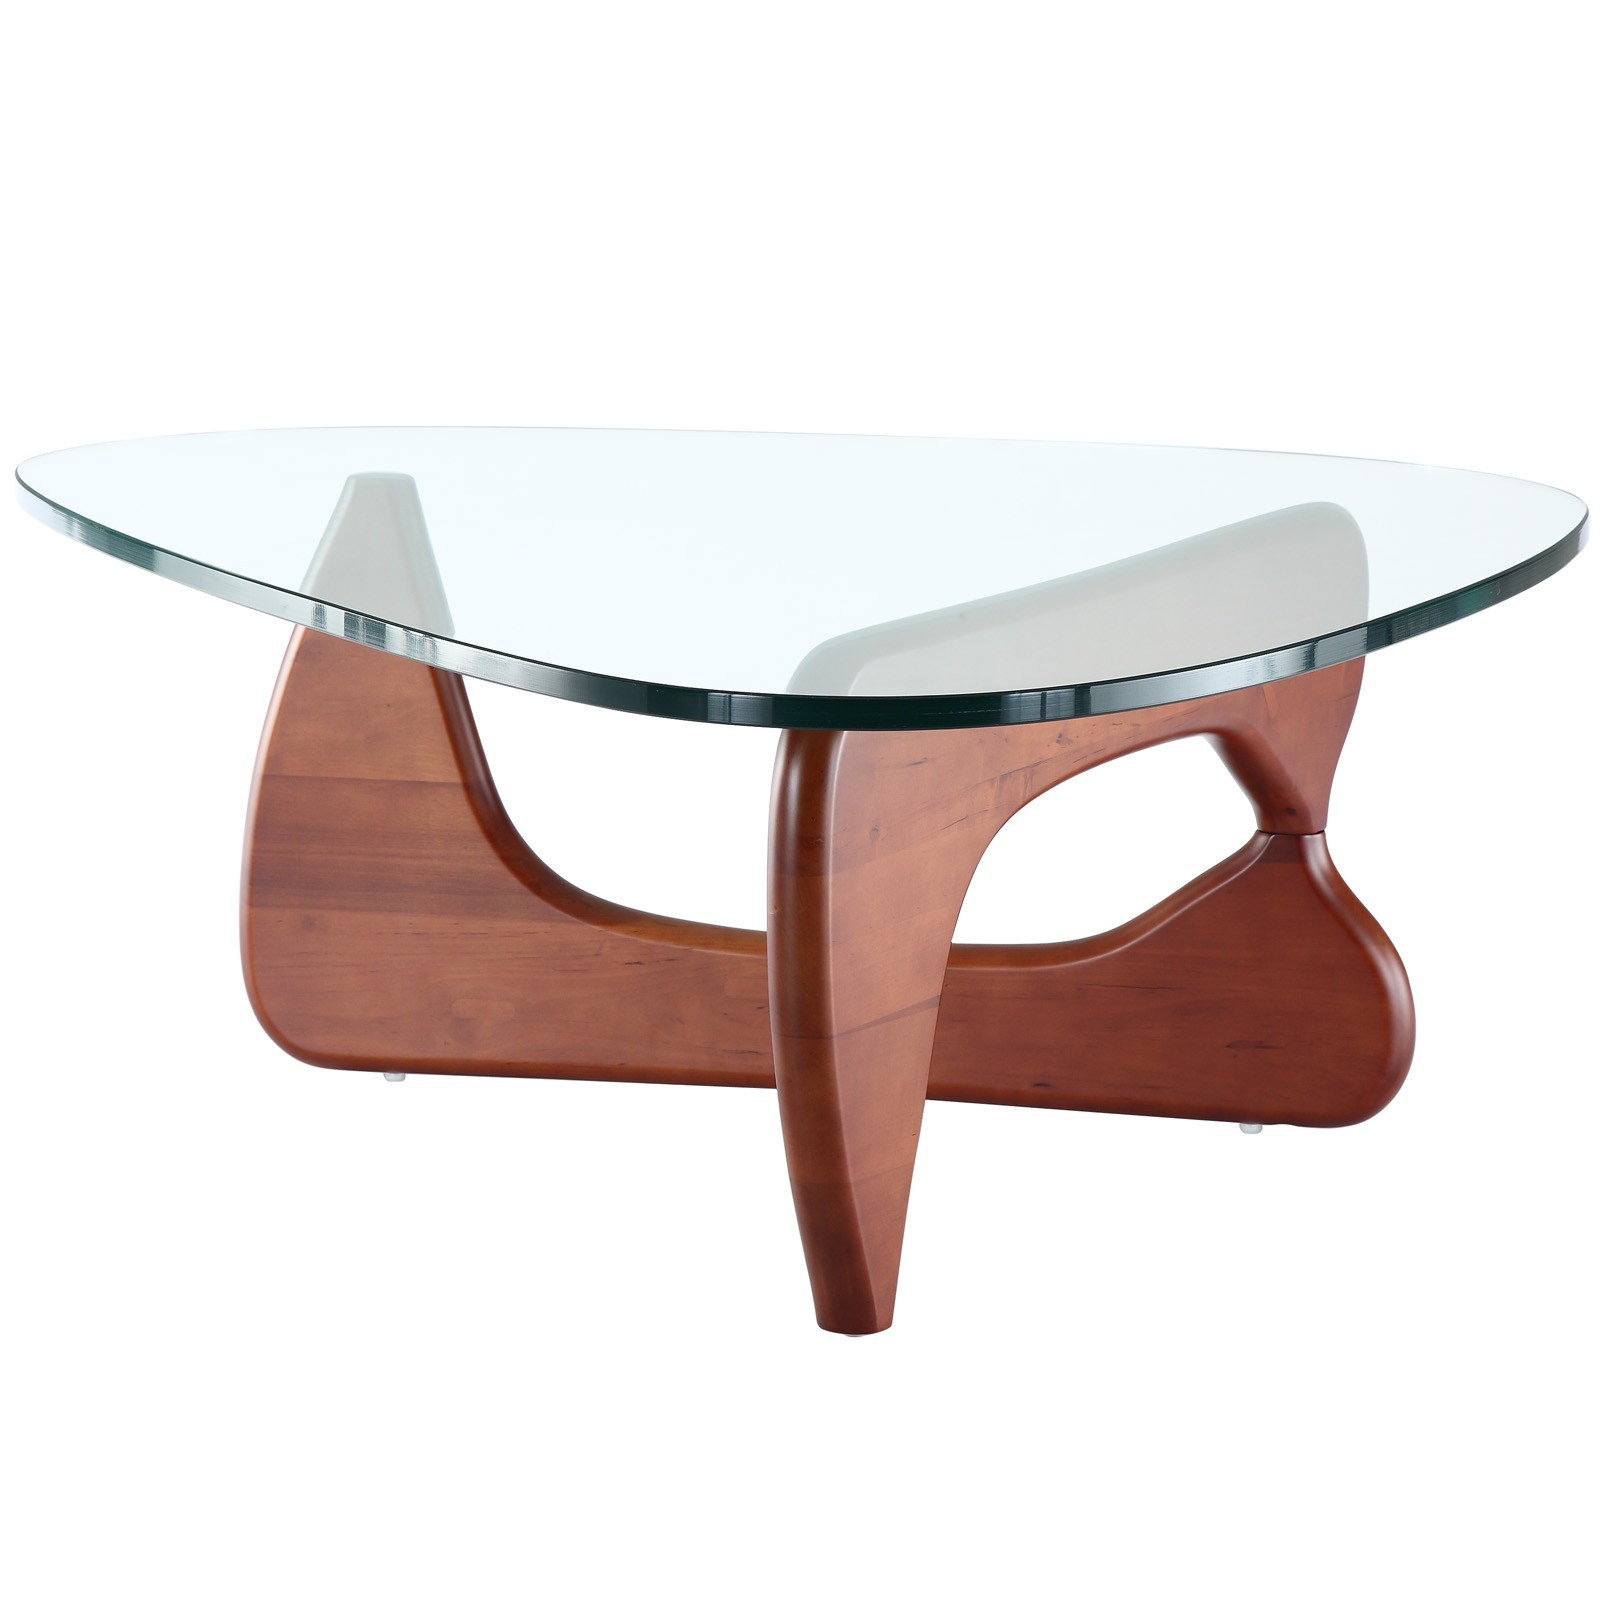 Image of: New noguchi coffee table